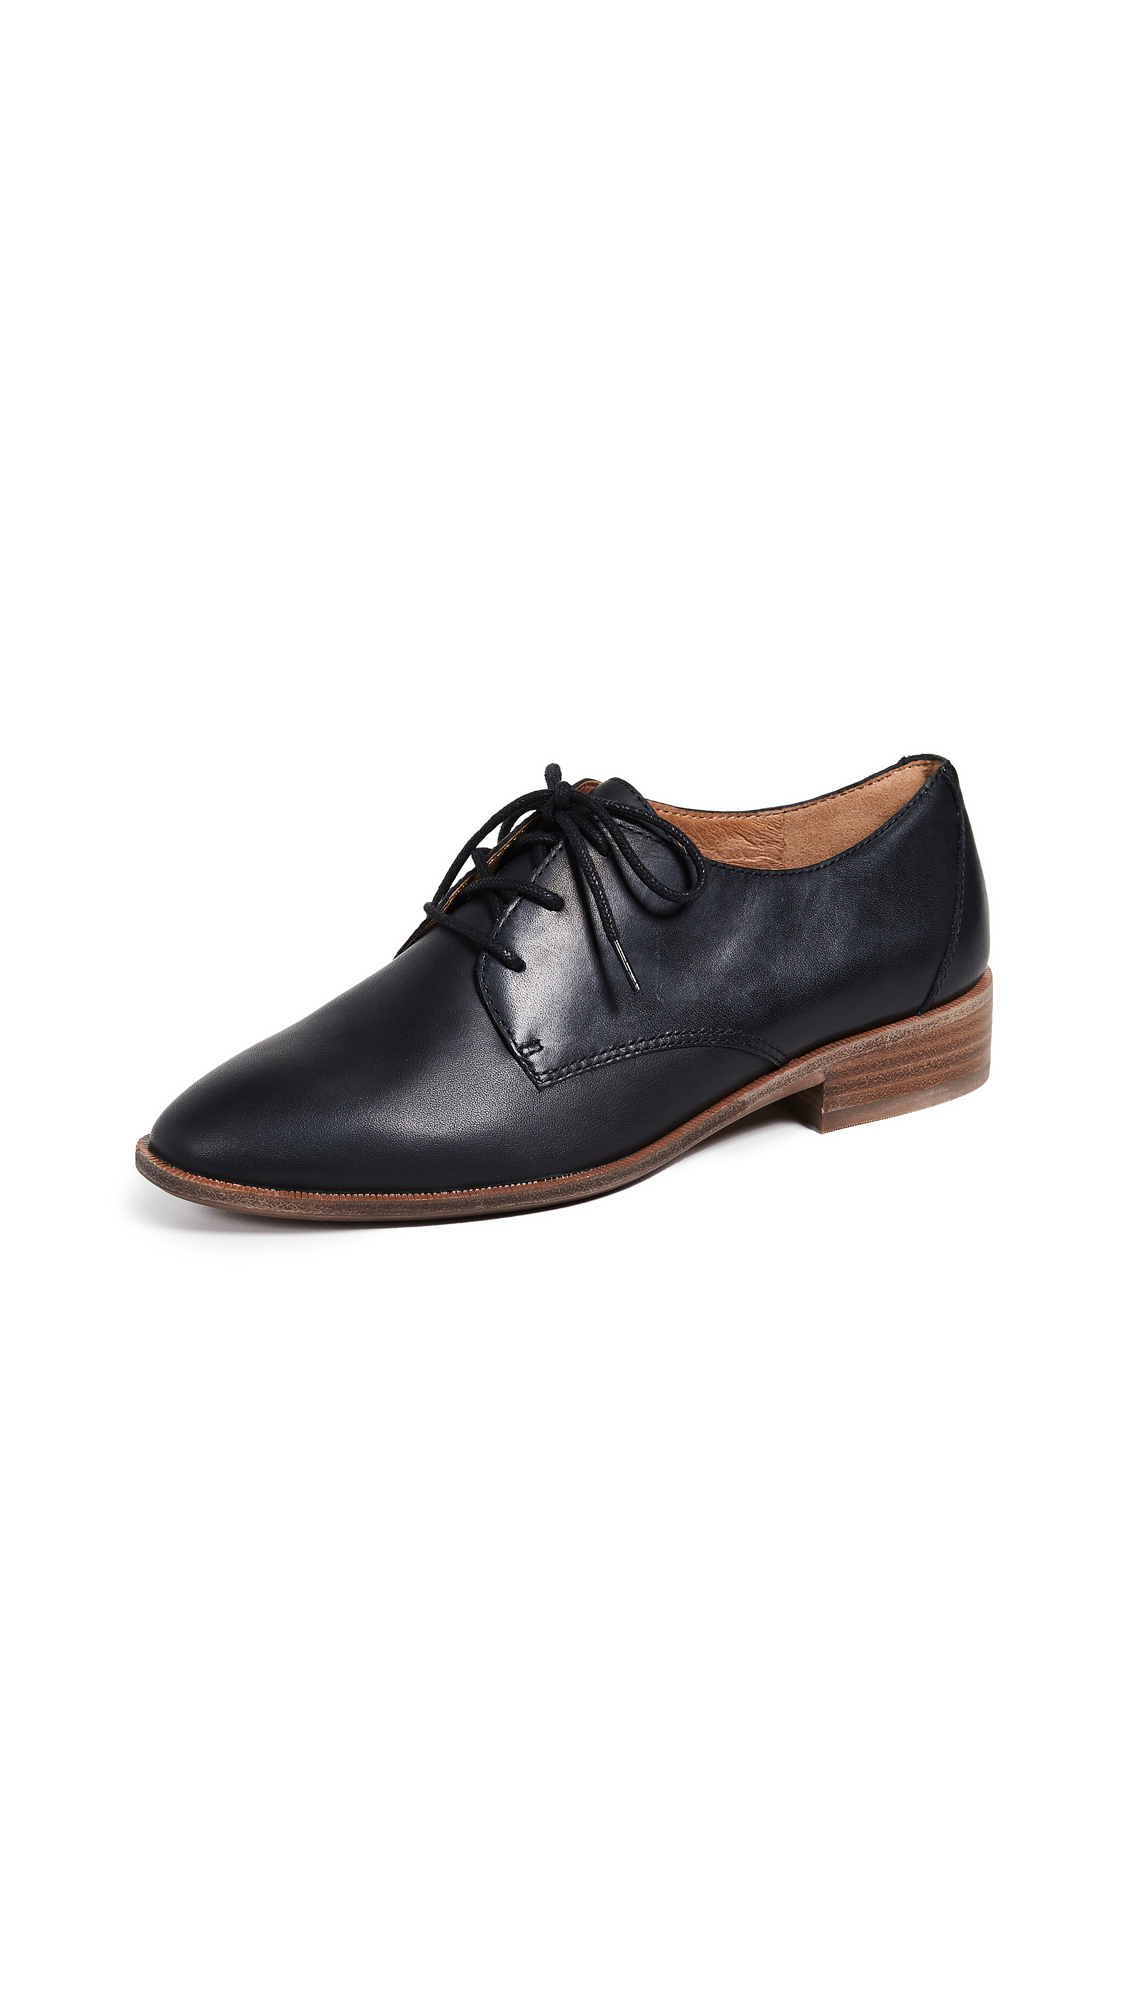 Madewell Pauline Oxfords - True Black